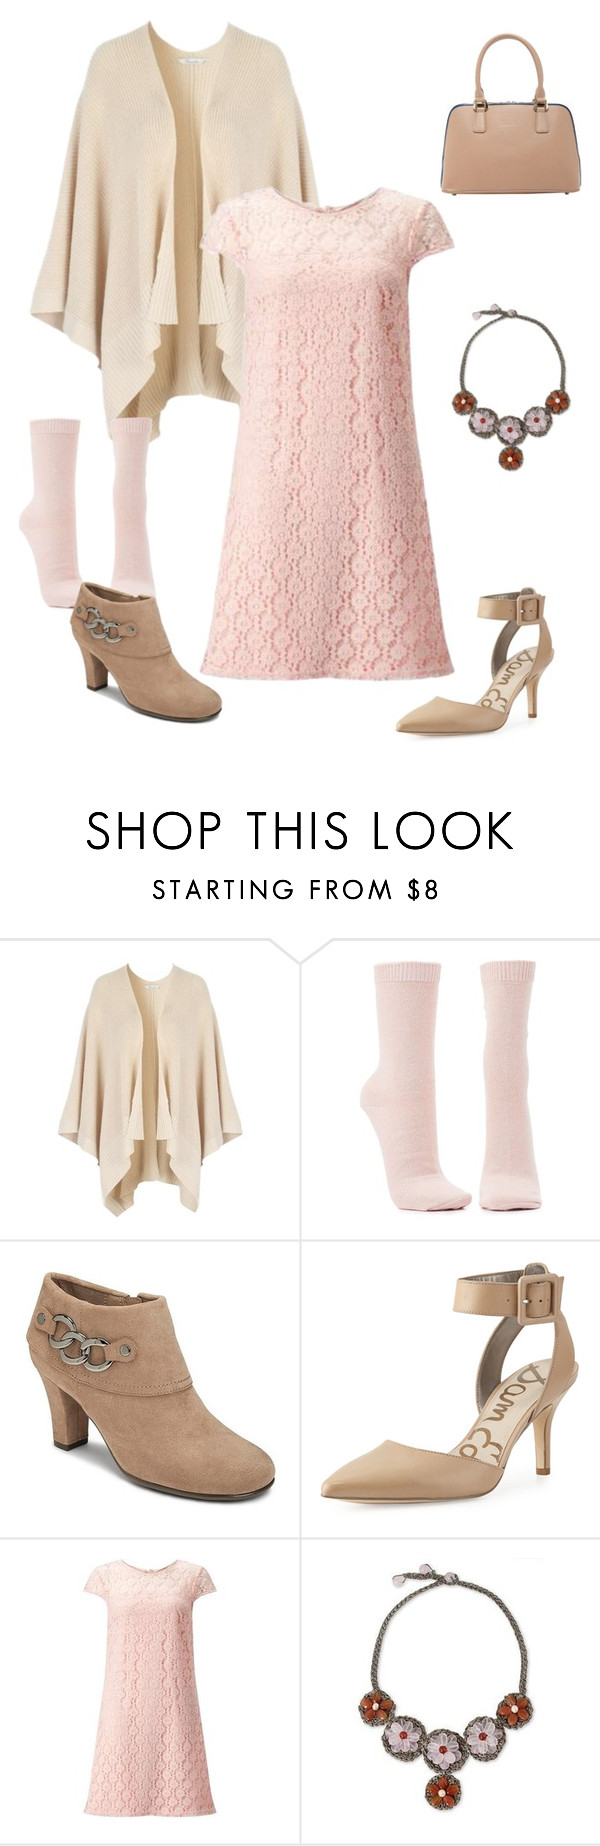 """""""Outfit"""" by sunshower315 on Polyvore featuring Charlotte Russe, A2 by Aerosoles, Sam Edelman, Miss Selfridge, NOVICA and SUSU"""